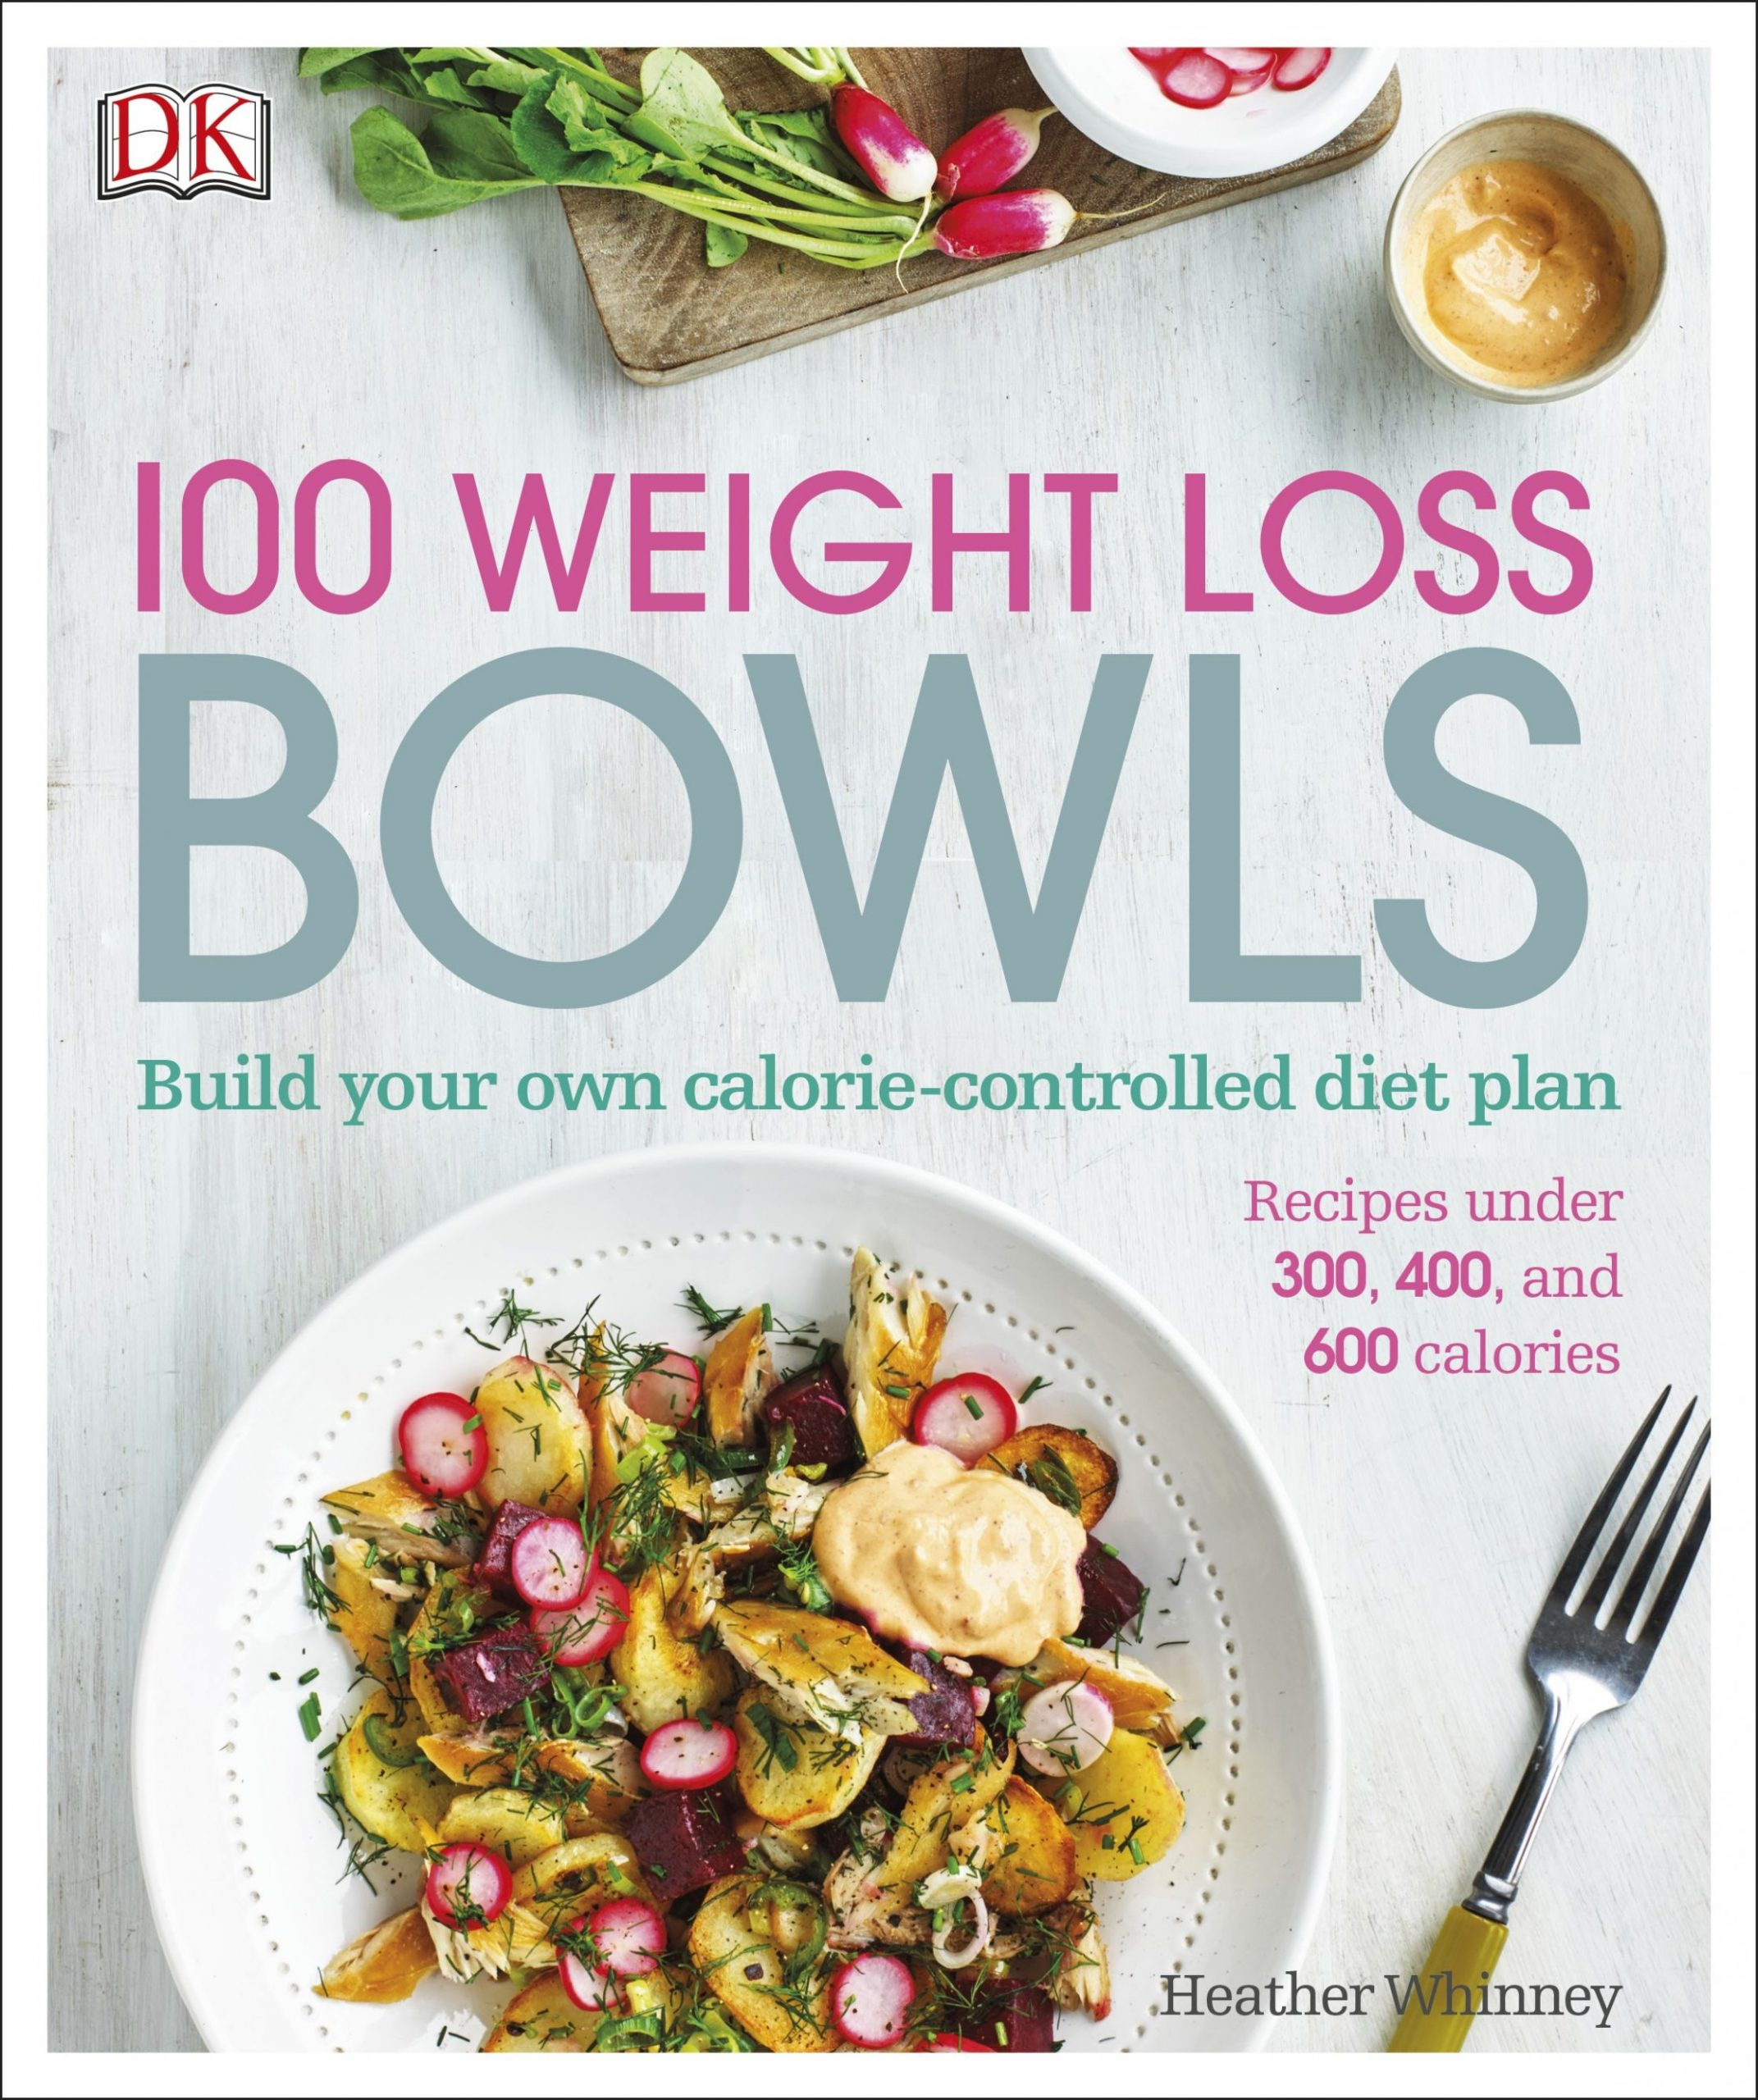 10 Weight Loss Bowls by DK - Penguin Books Australia - Recipes For Weight Loss Australia